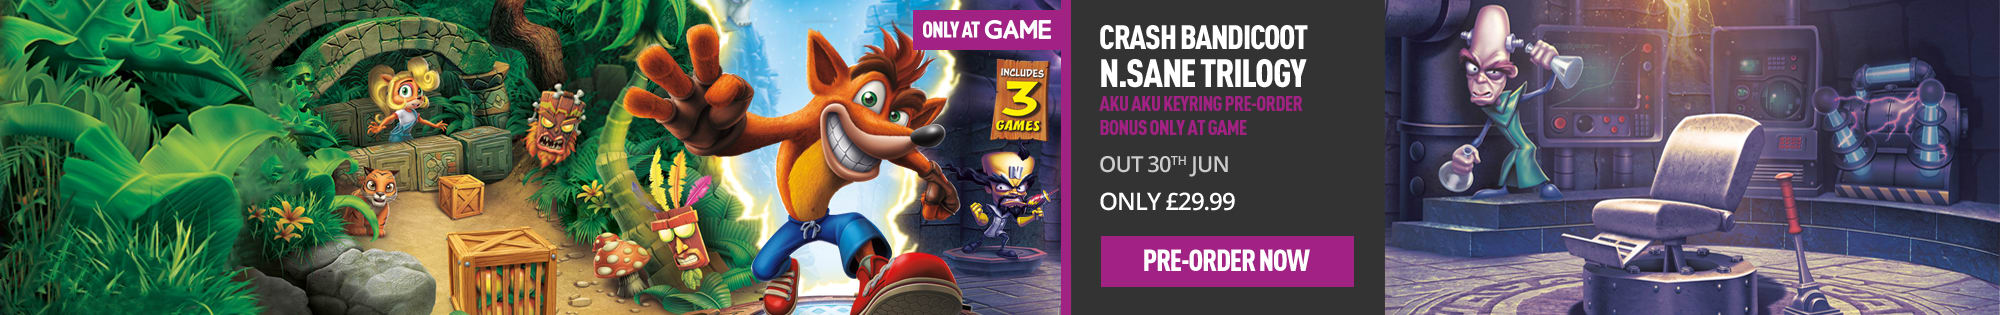 Crash Bandicoot - Homepage Banner